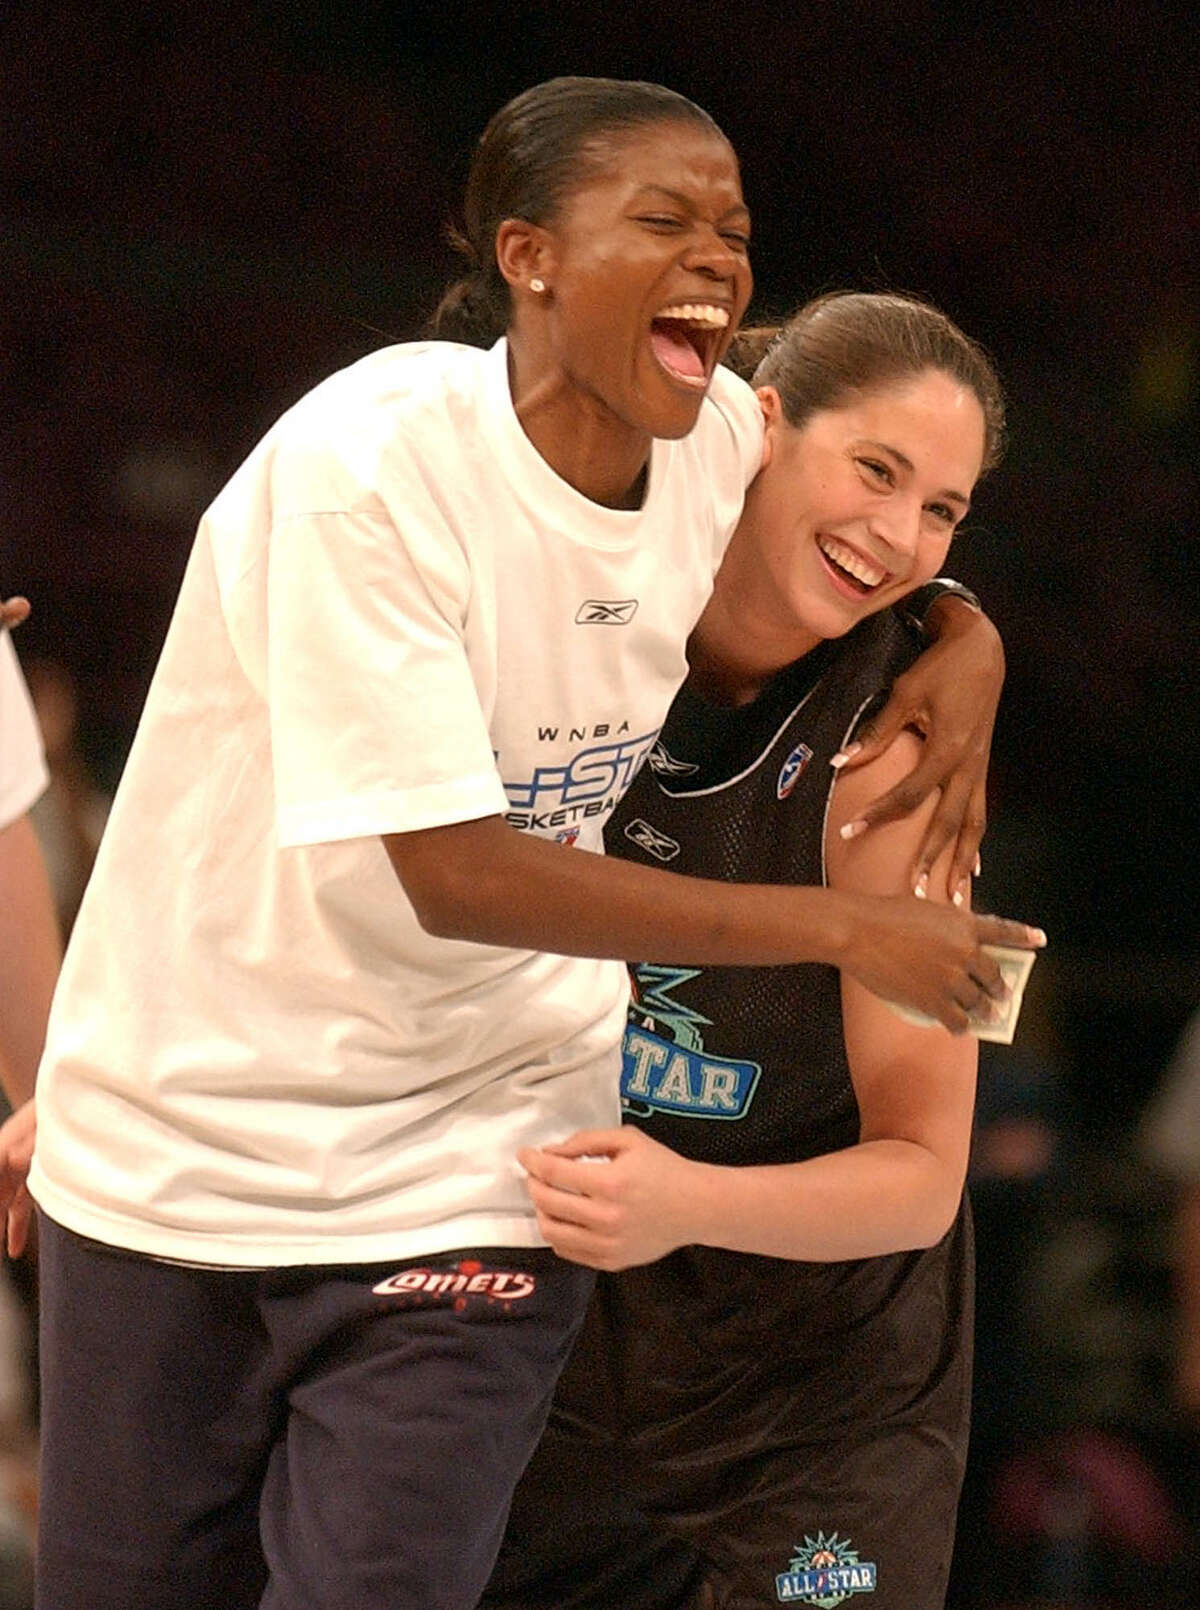 Western Conference All Stars Sheryl Swoopes, of the Houston Comets, hugs Sue Bird, of the Seattle Storm, after Bird sunk a basket from half court during practice for the WNBA All Star game at Madison Square Garden in New York, Friday, July 11, 2003.